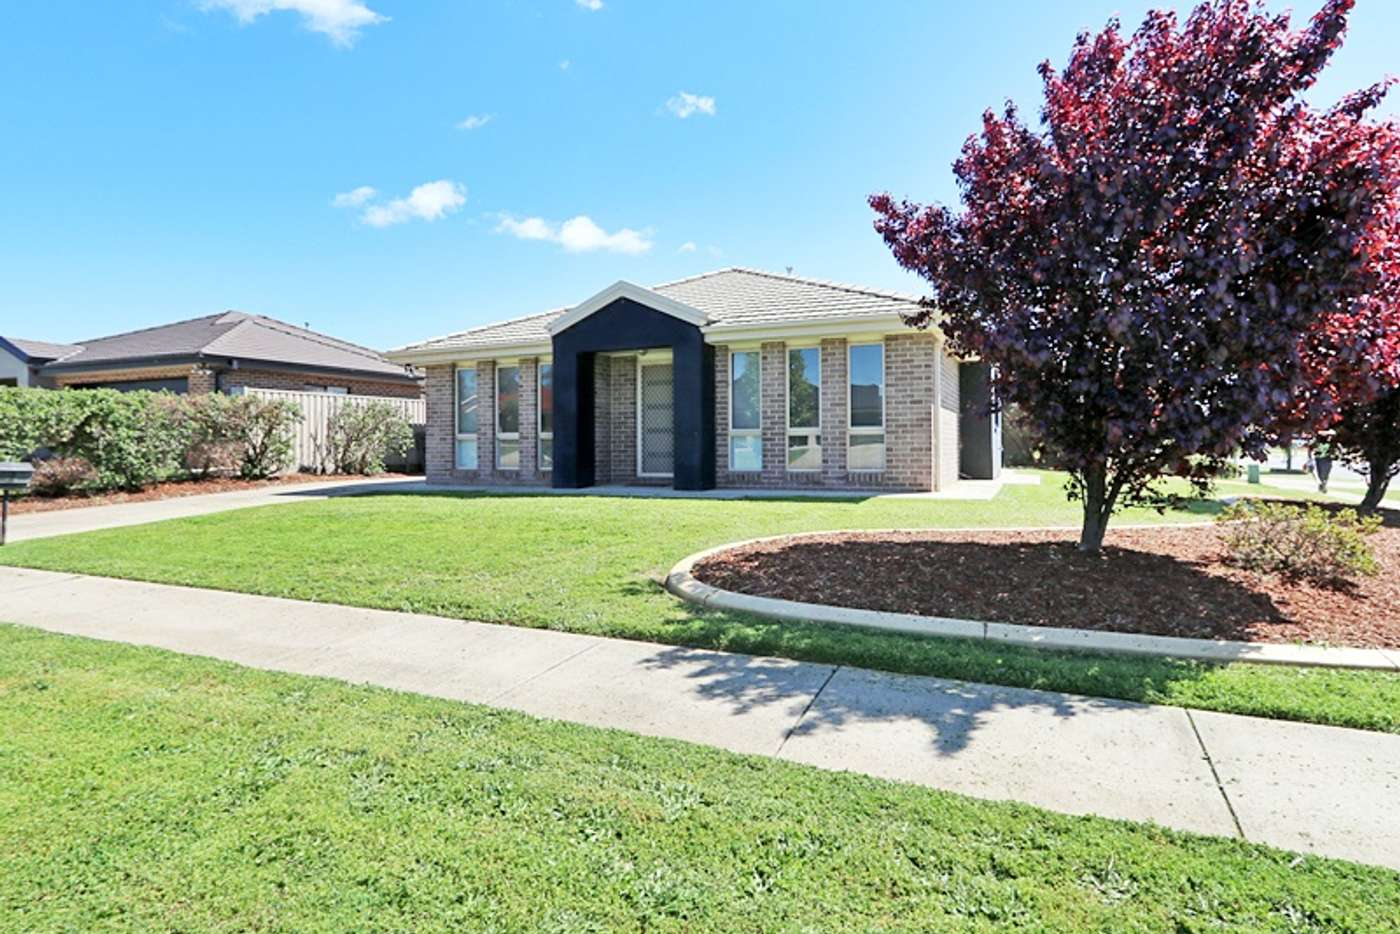 Main view of Homely house listing, 24 Barrima Drive, Glenfield Park NSW 2650